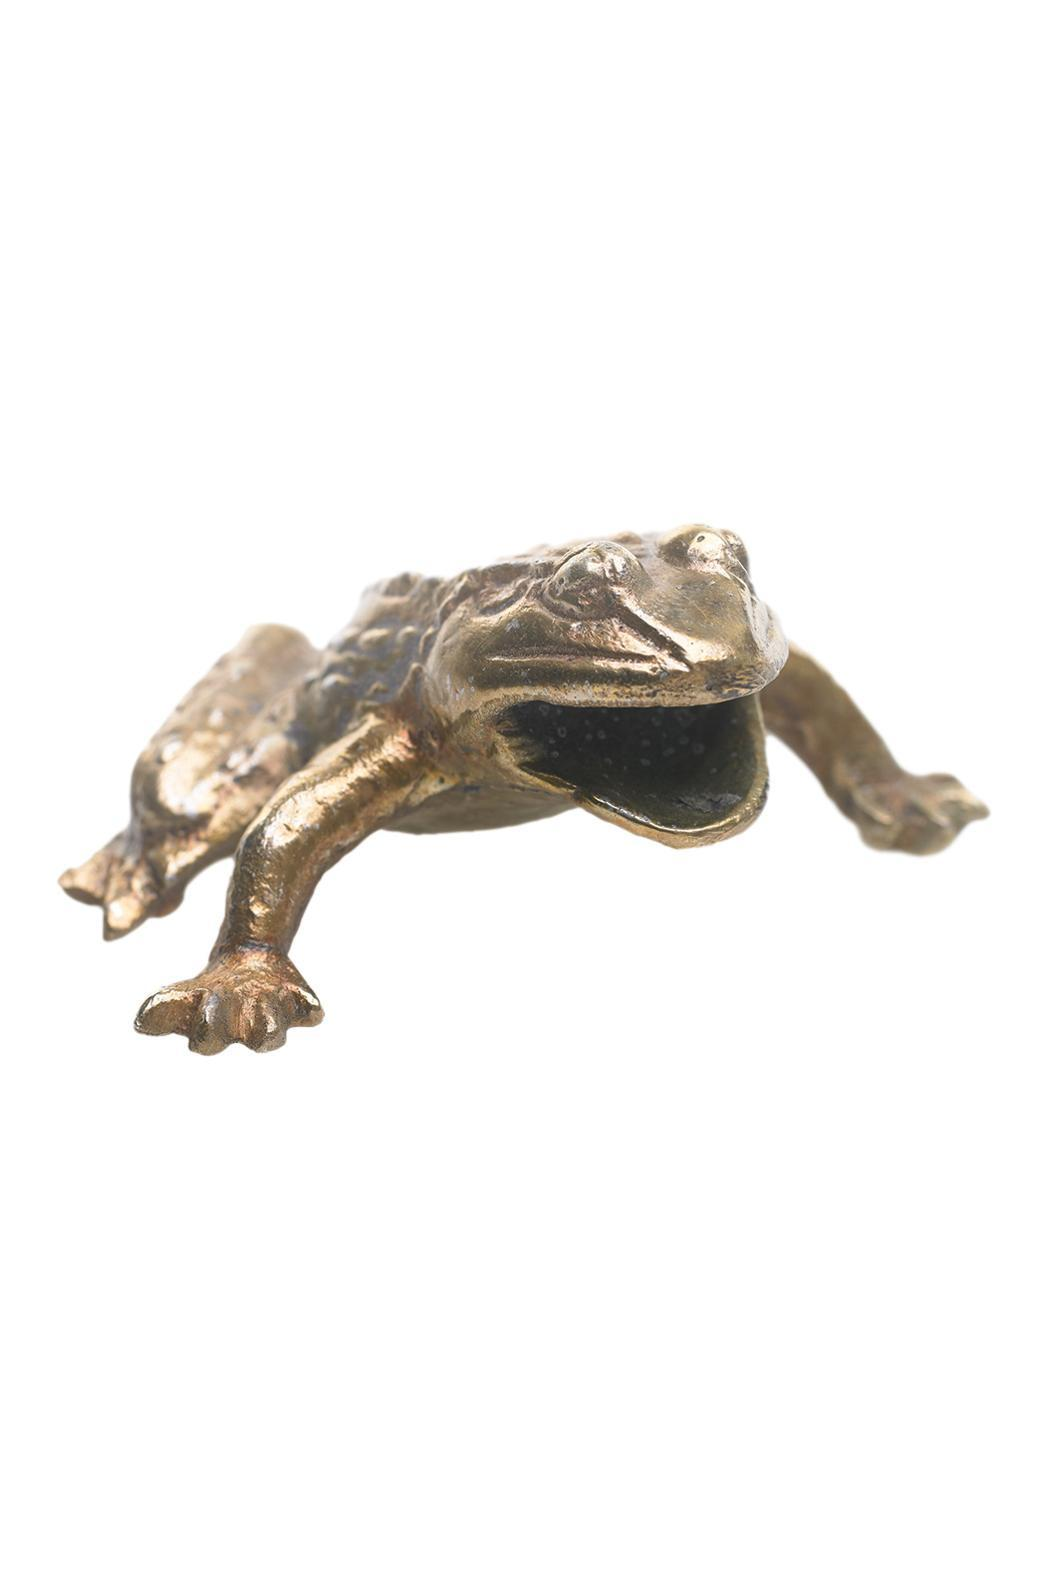 The Birch Tree Furniture Frog Decor - Main Image